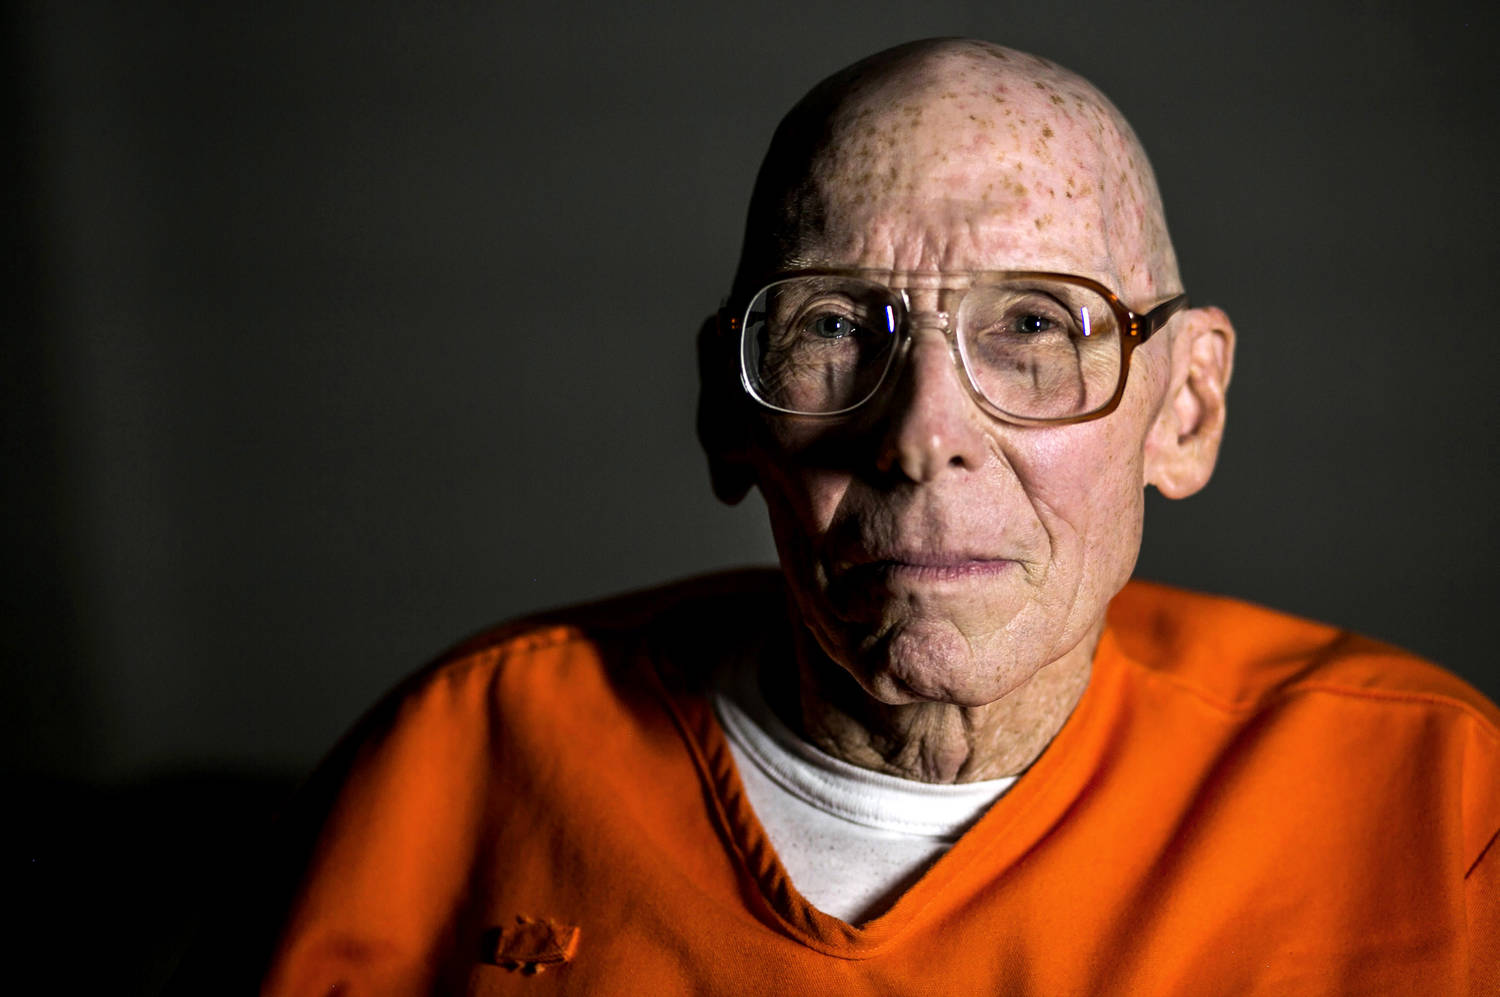 A very old man, either bald or with a very short haircut. He is wearing glasses and an orange prison jumpsuit. He is looking directly into the camera.